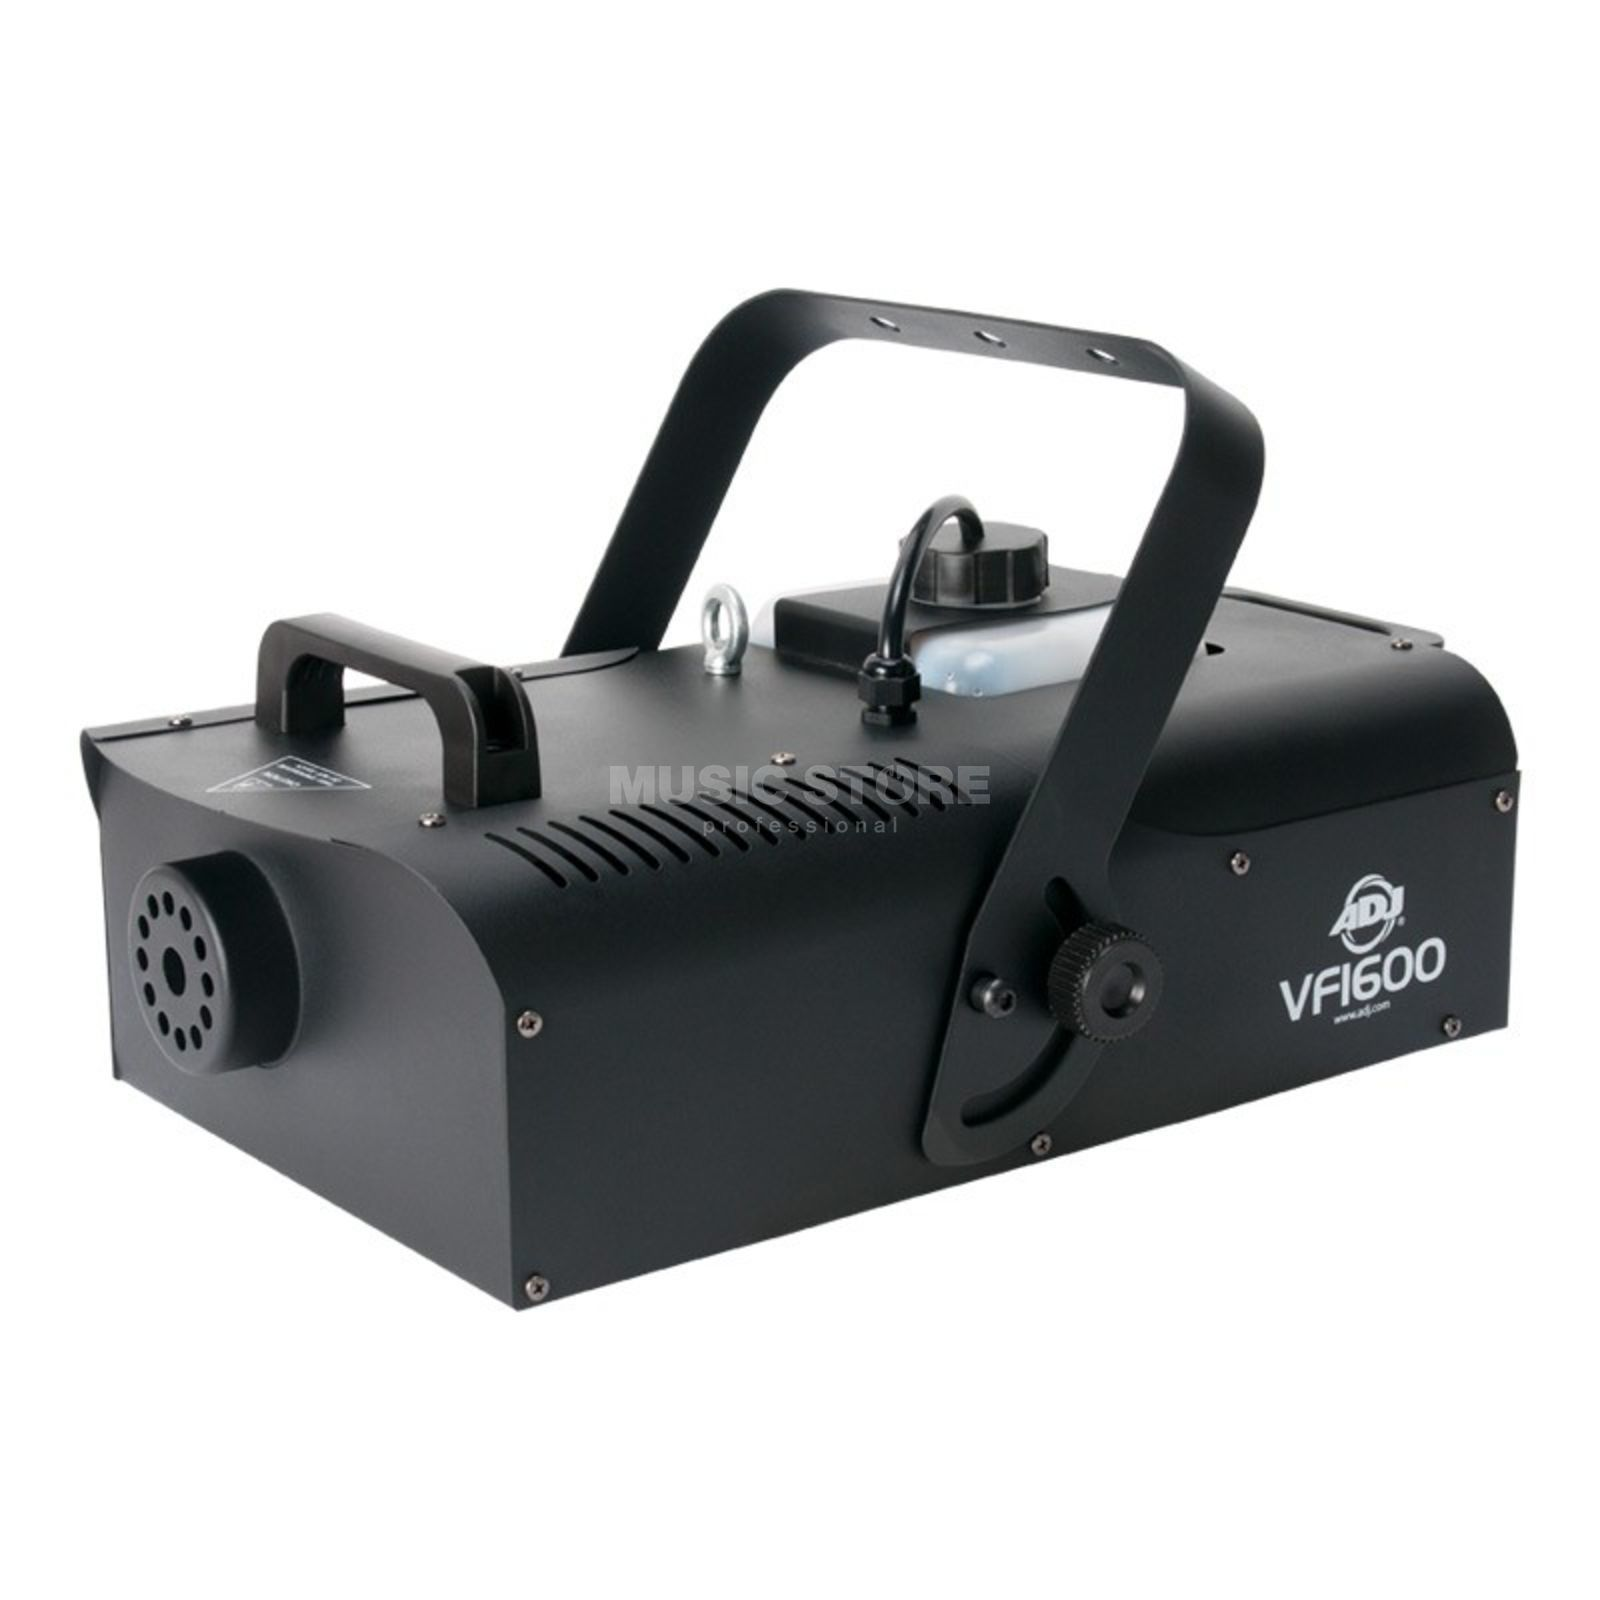 American DJ VF1600 Fog Machine with 1600 W Product Image